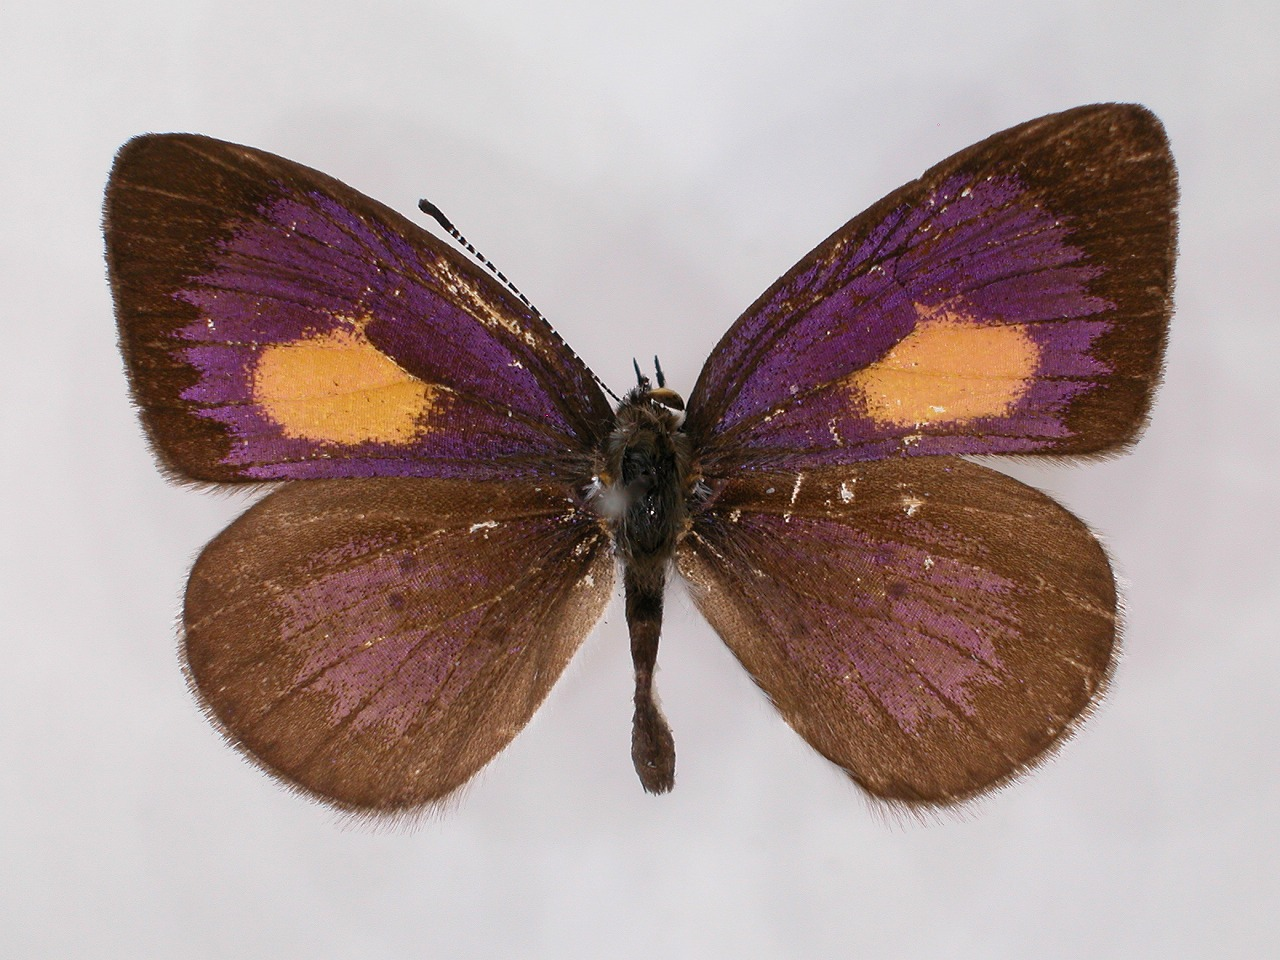 https://www.hitohaku.jp/material/l-material/butterfly-wing/5-lycaenidae/B1-273349_A.jpg